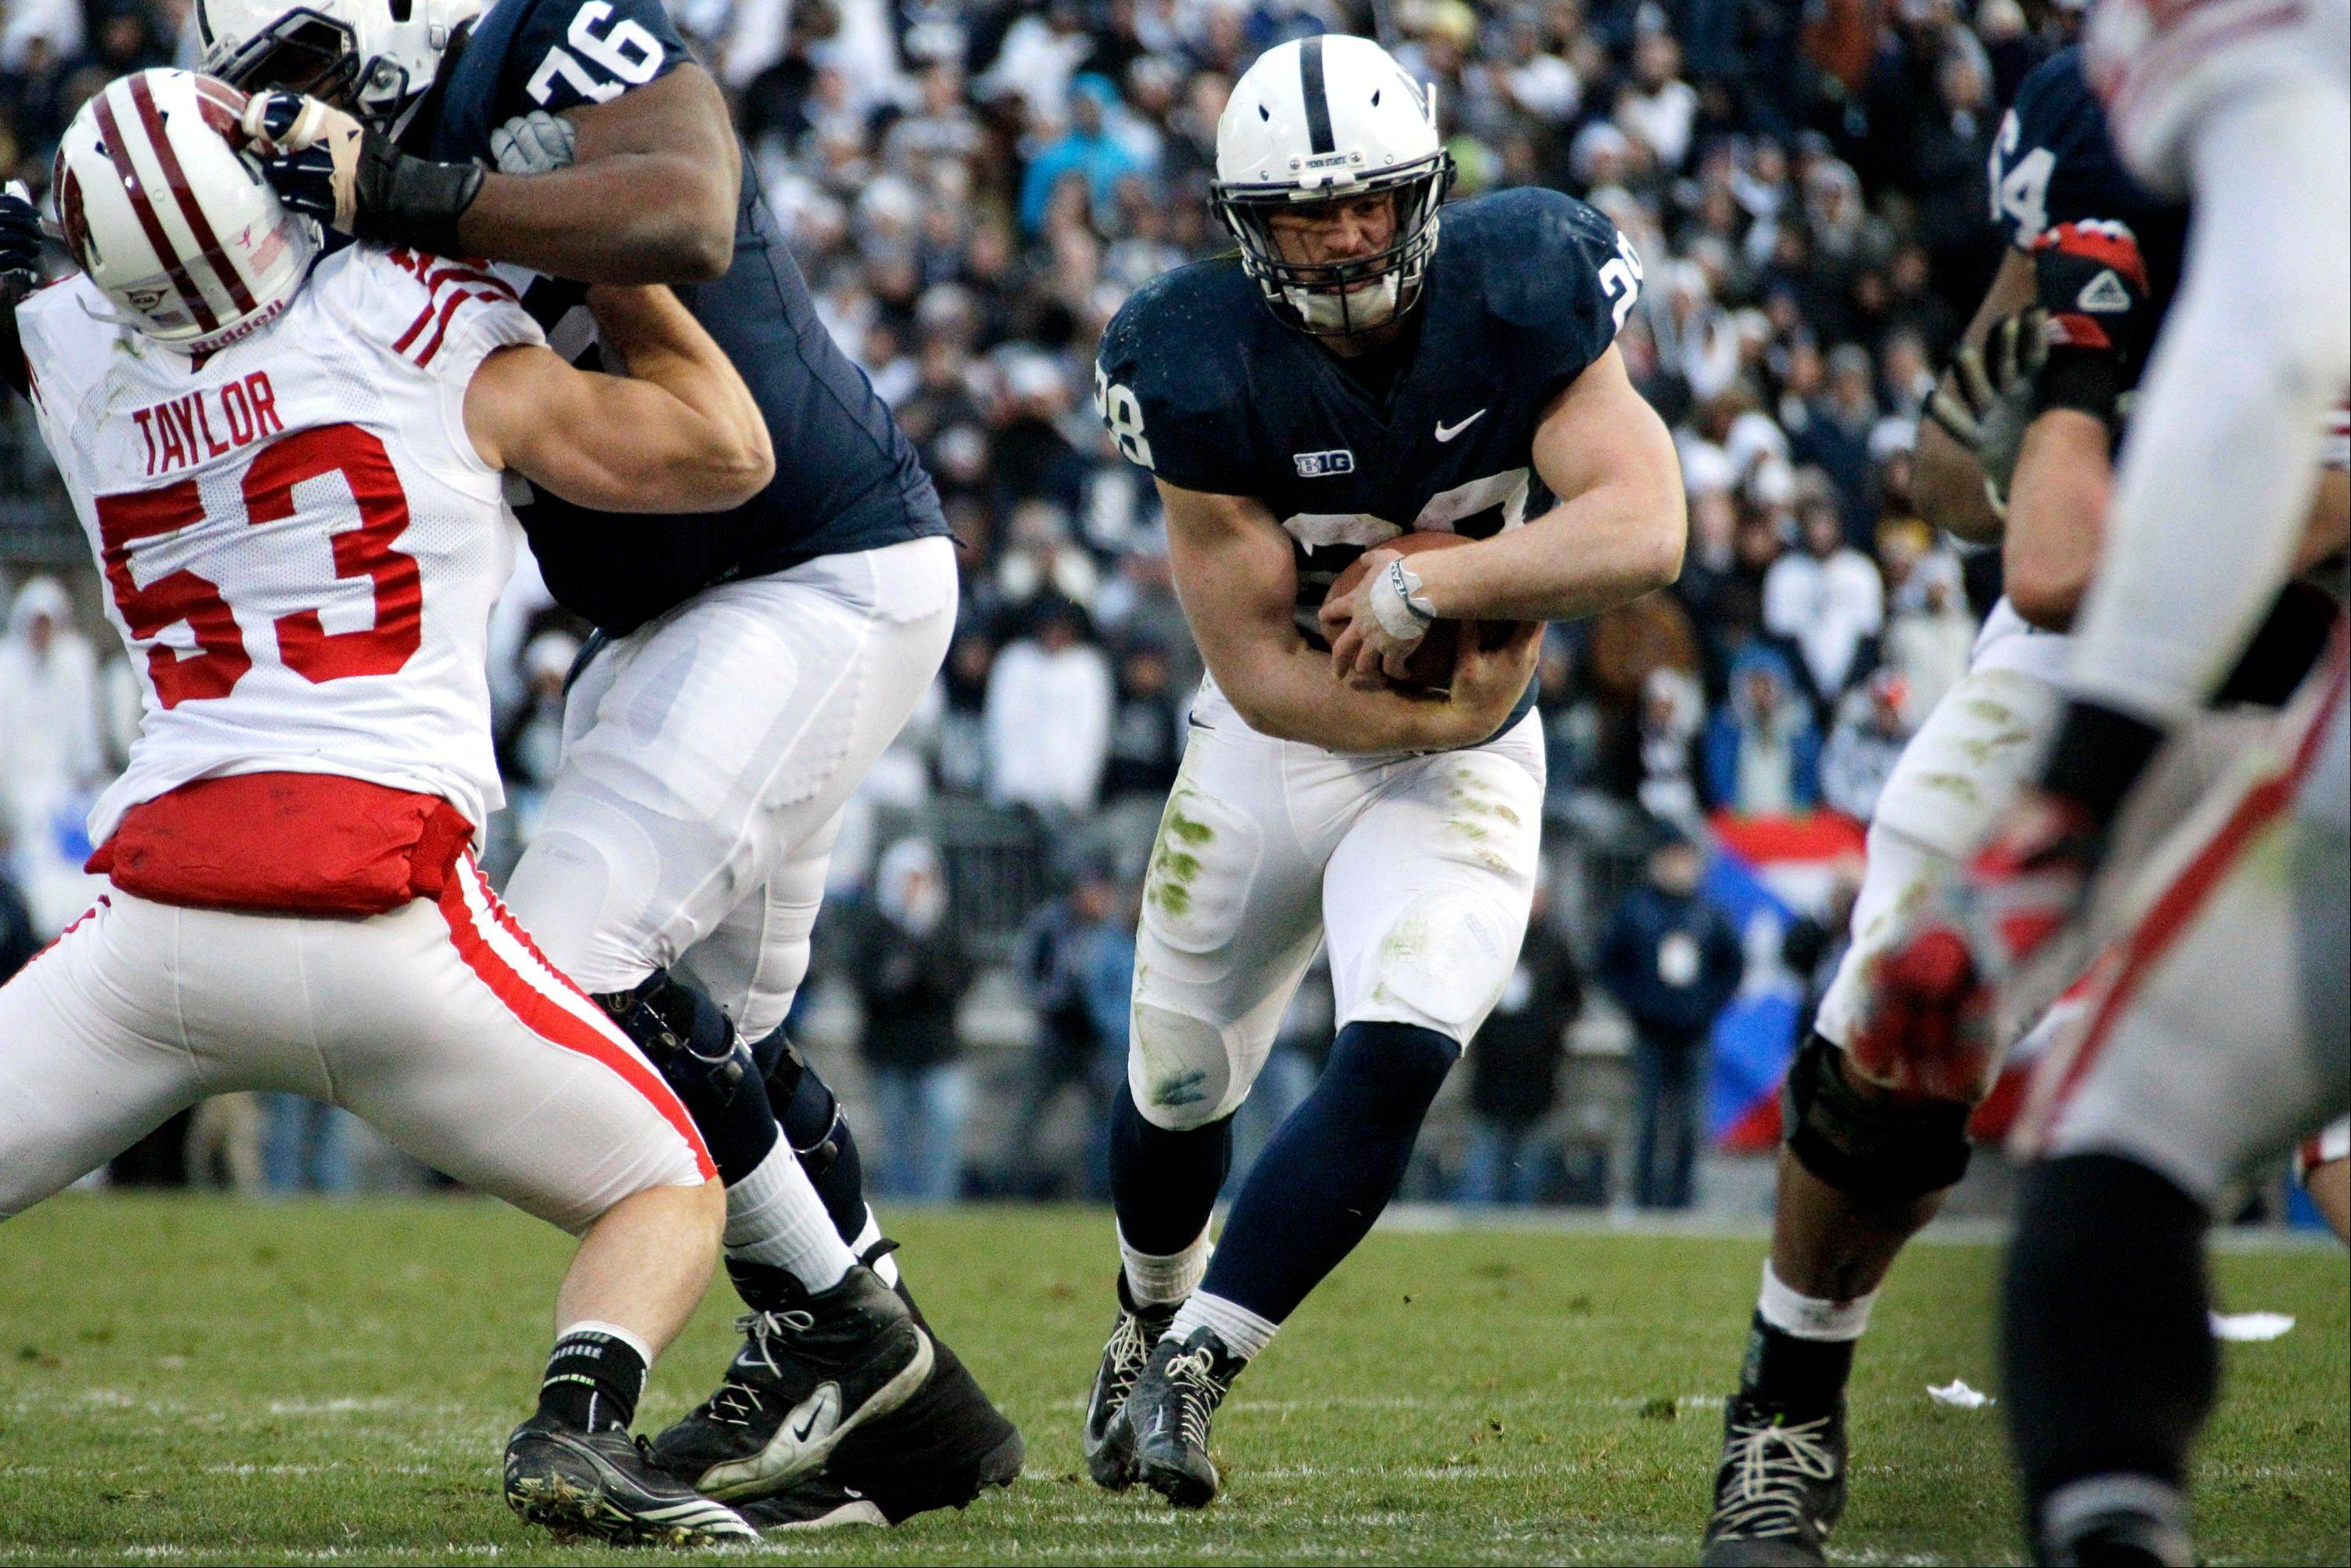 Penn State beats Wisconsin 24-21 in OT